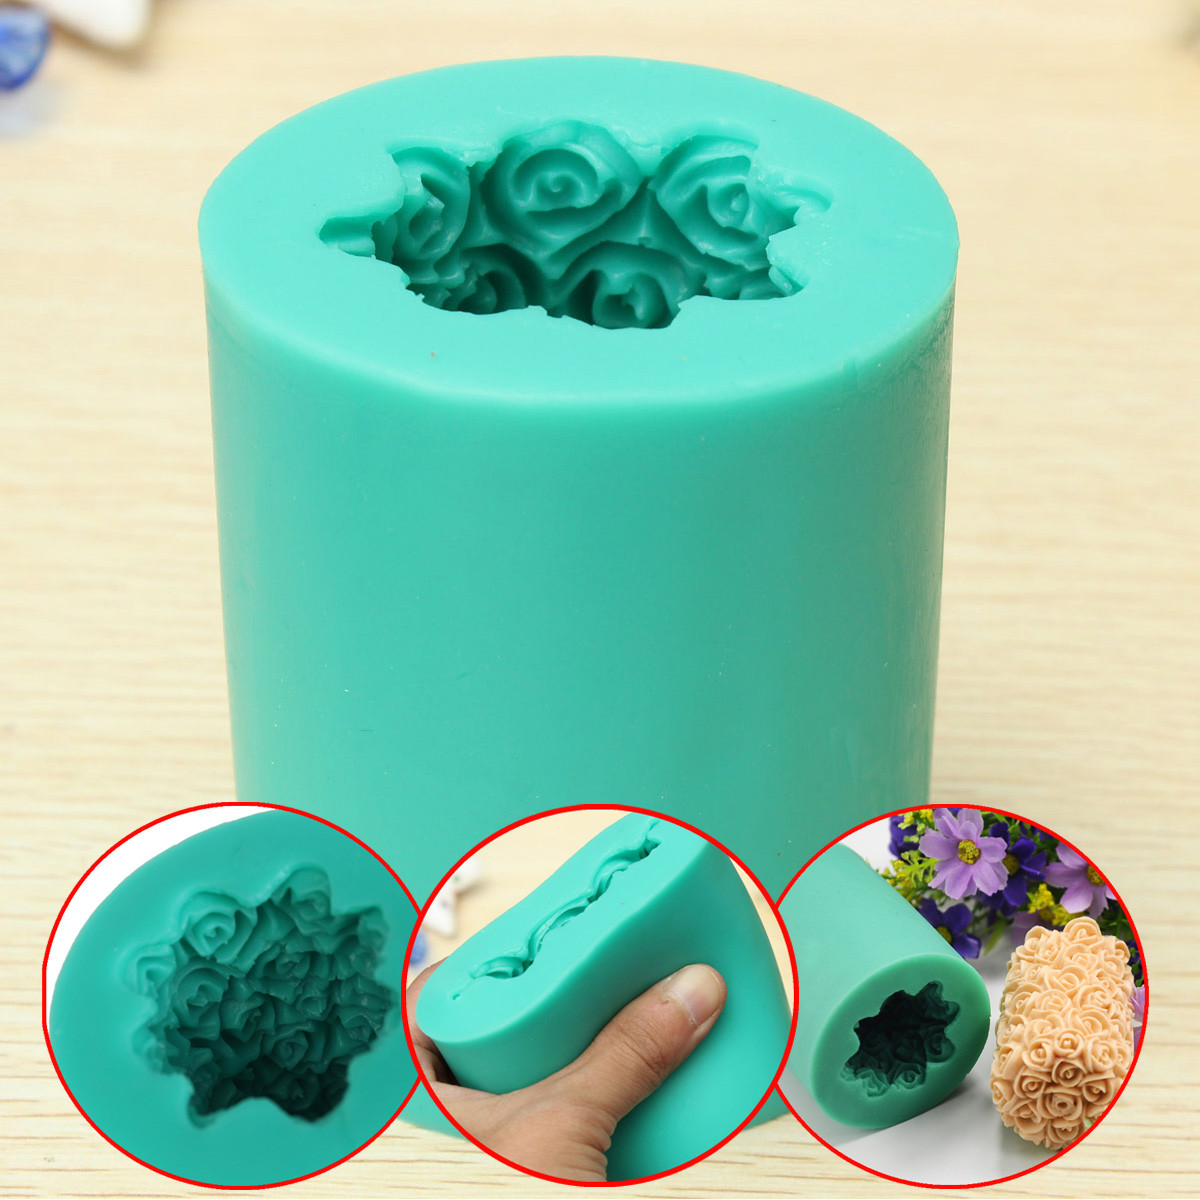 3D DIY Candle Mold Silicone Rose Flower Candle Soap Making Mould Mold Cylinder Wedding 7x4.5cm